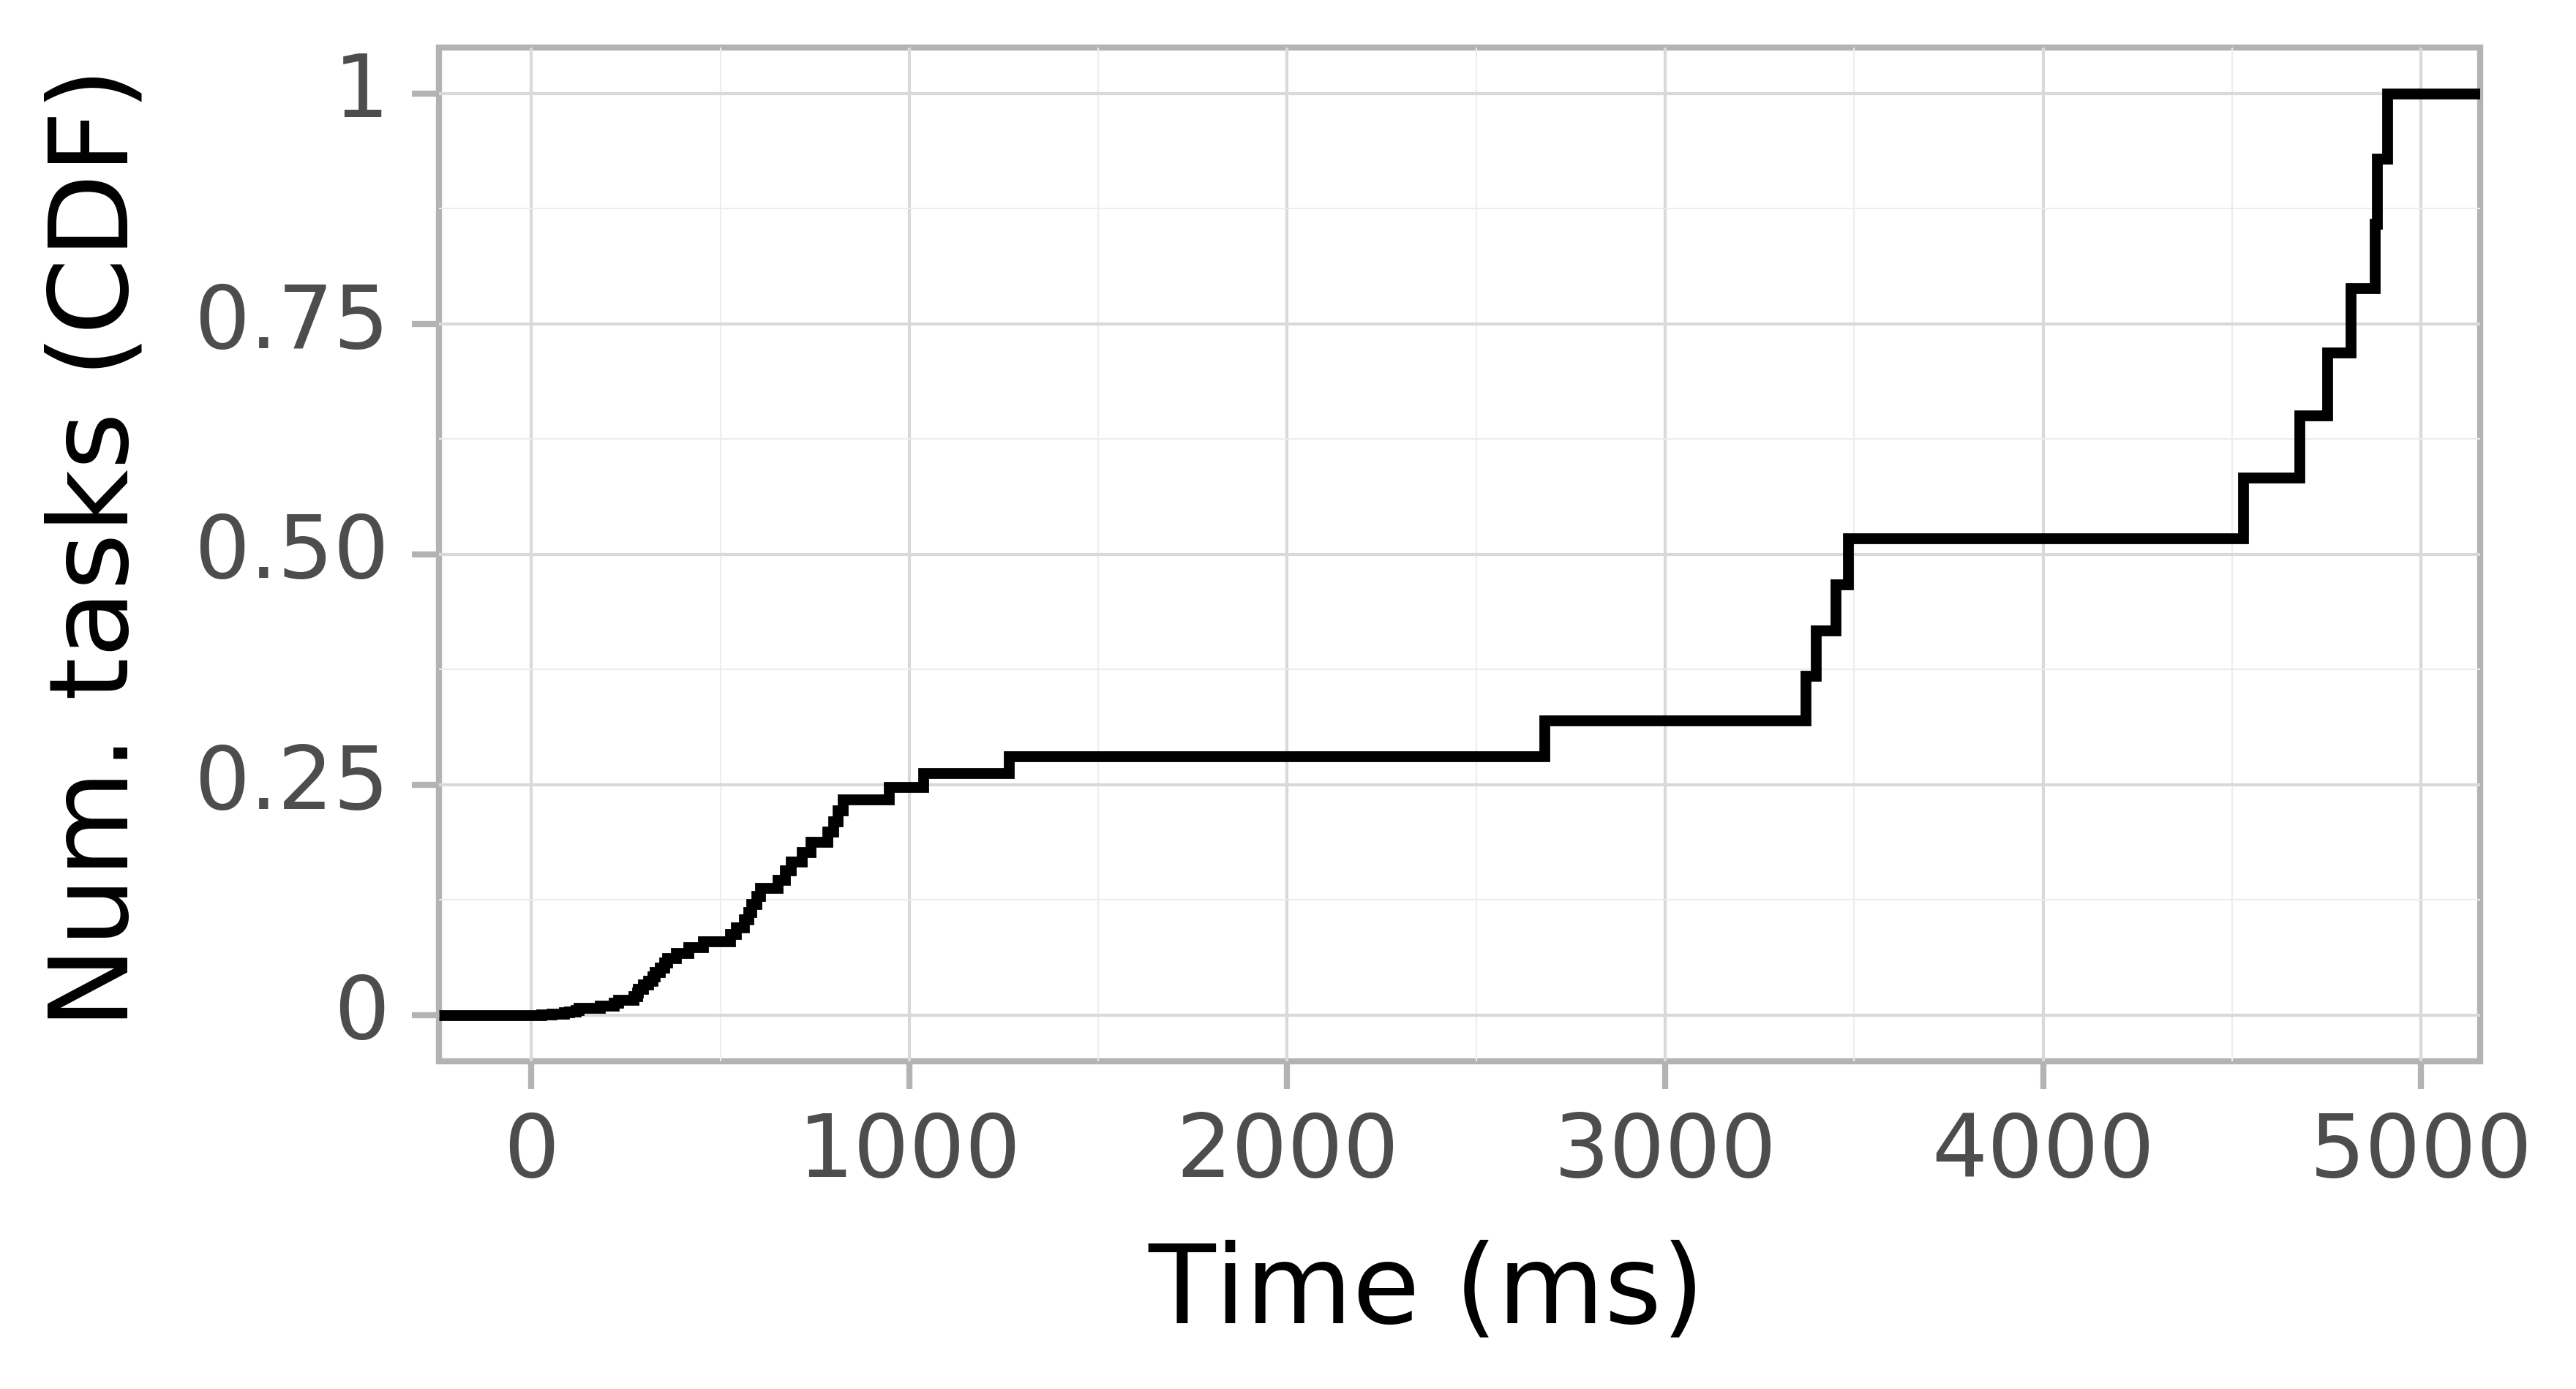 Task arrival CDF graph for the Pegasus_P5 trace.